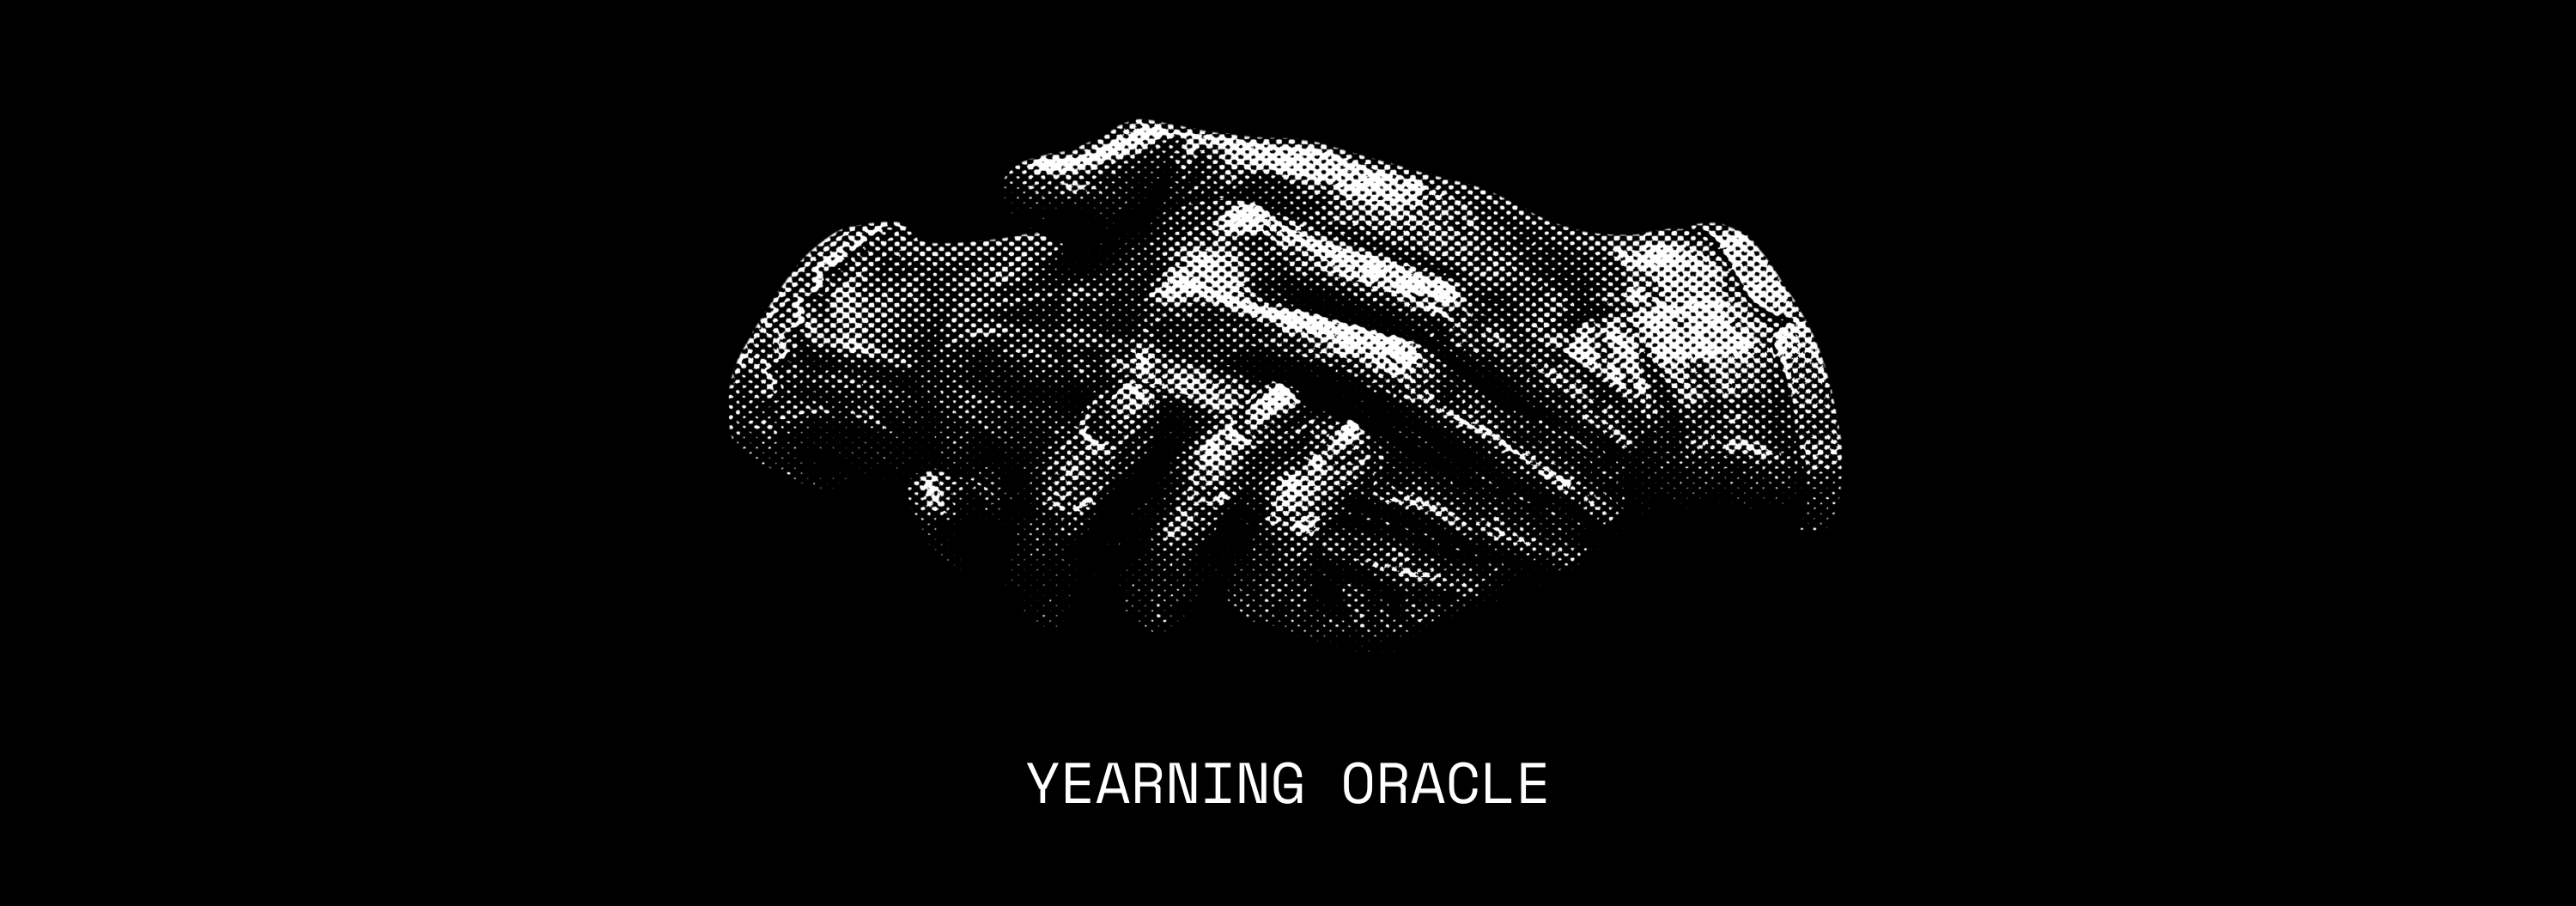 Yearning Oracle